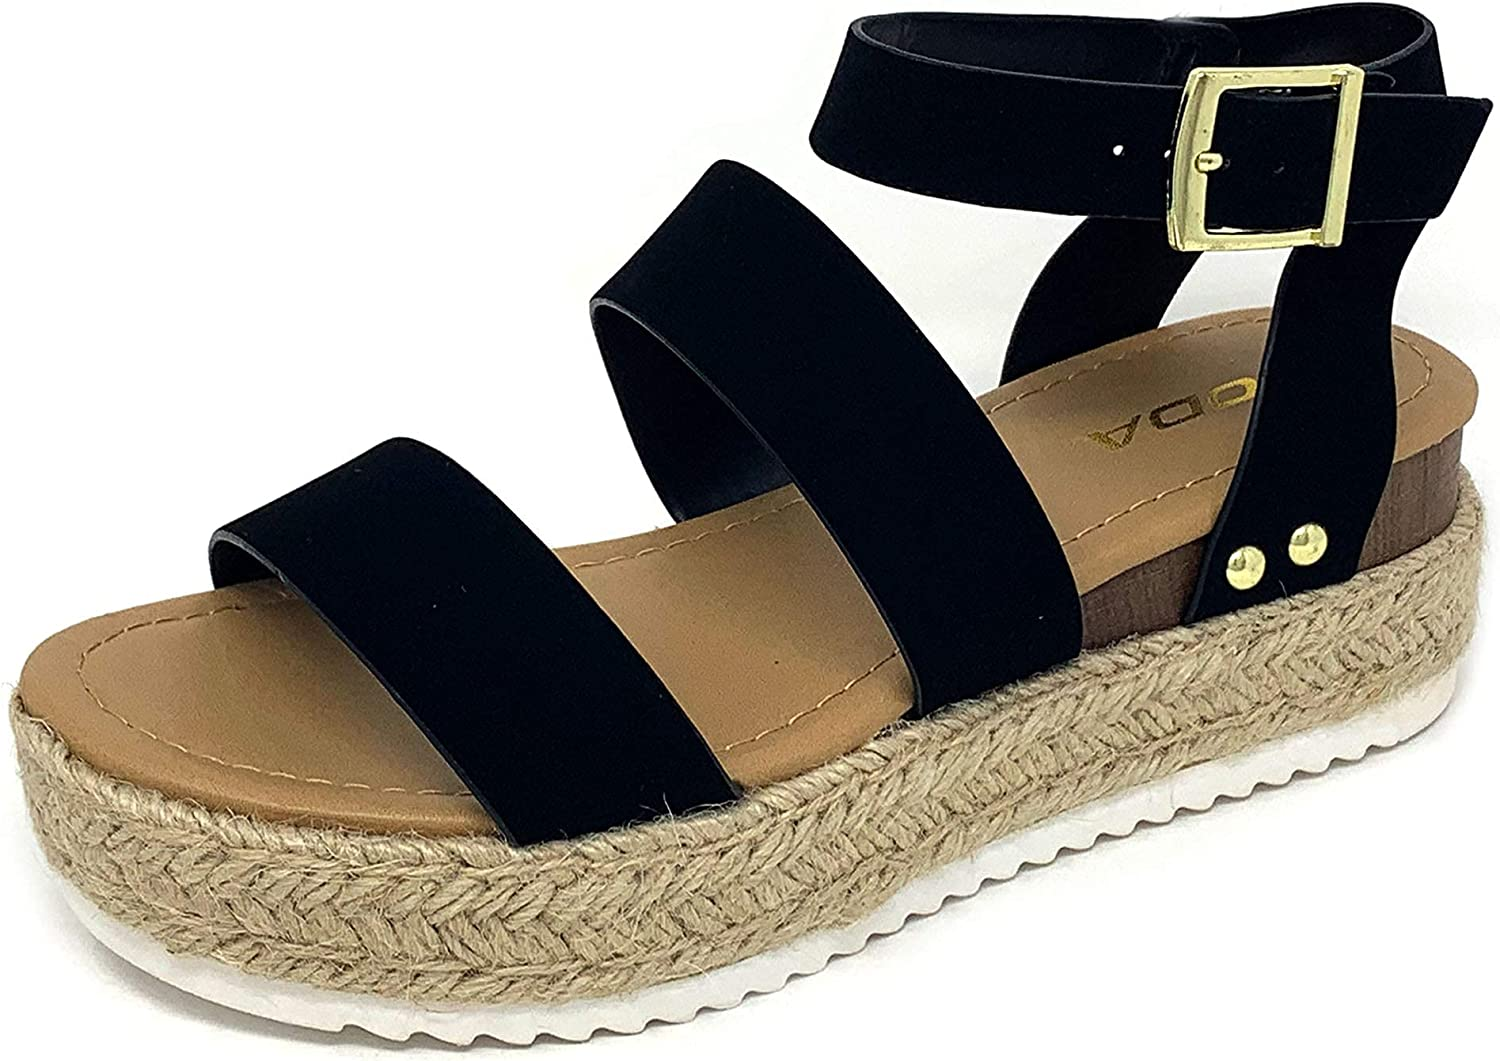 OFFicial mail order Soda Top Shoe Bryce Open Toe Buckle Ankle Strap Flat Cheap sale Espadrilles